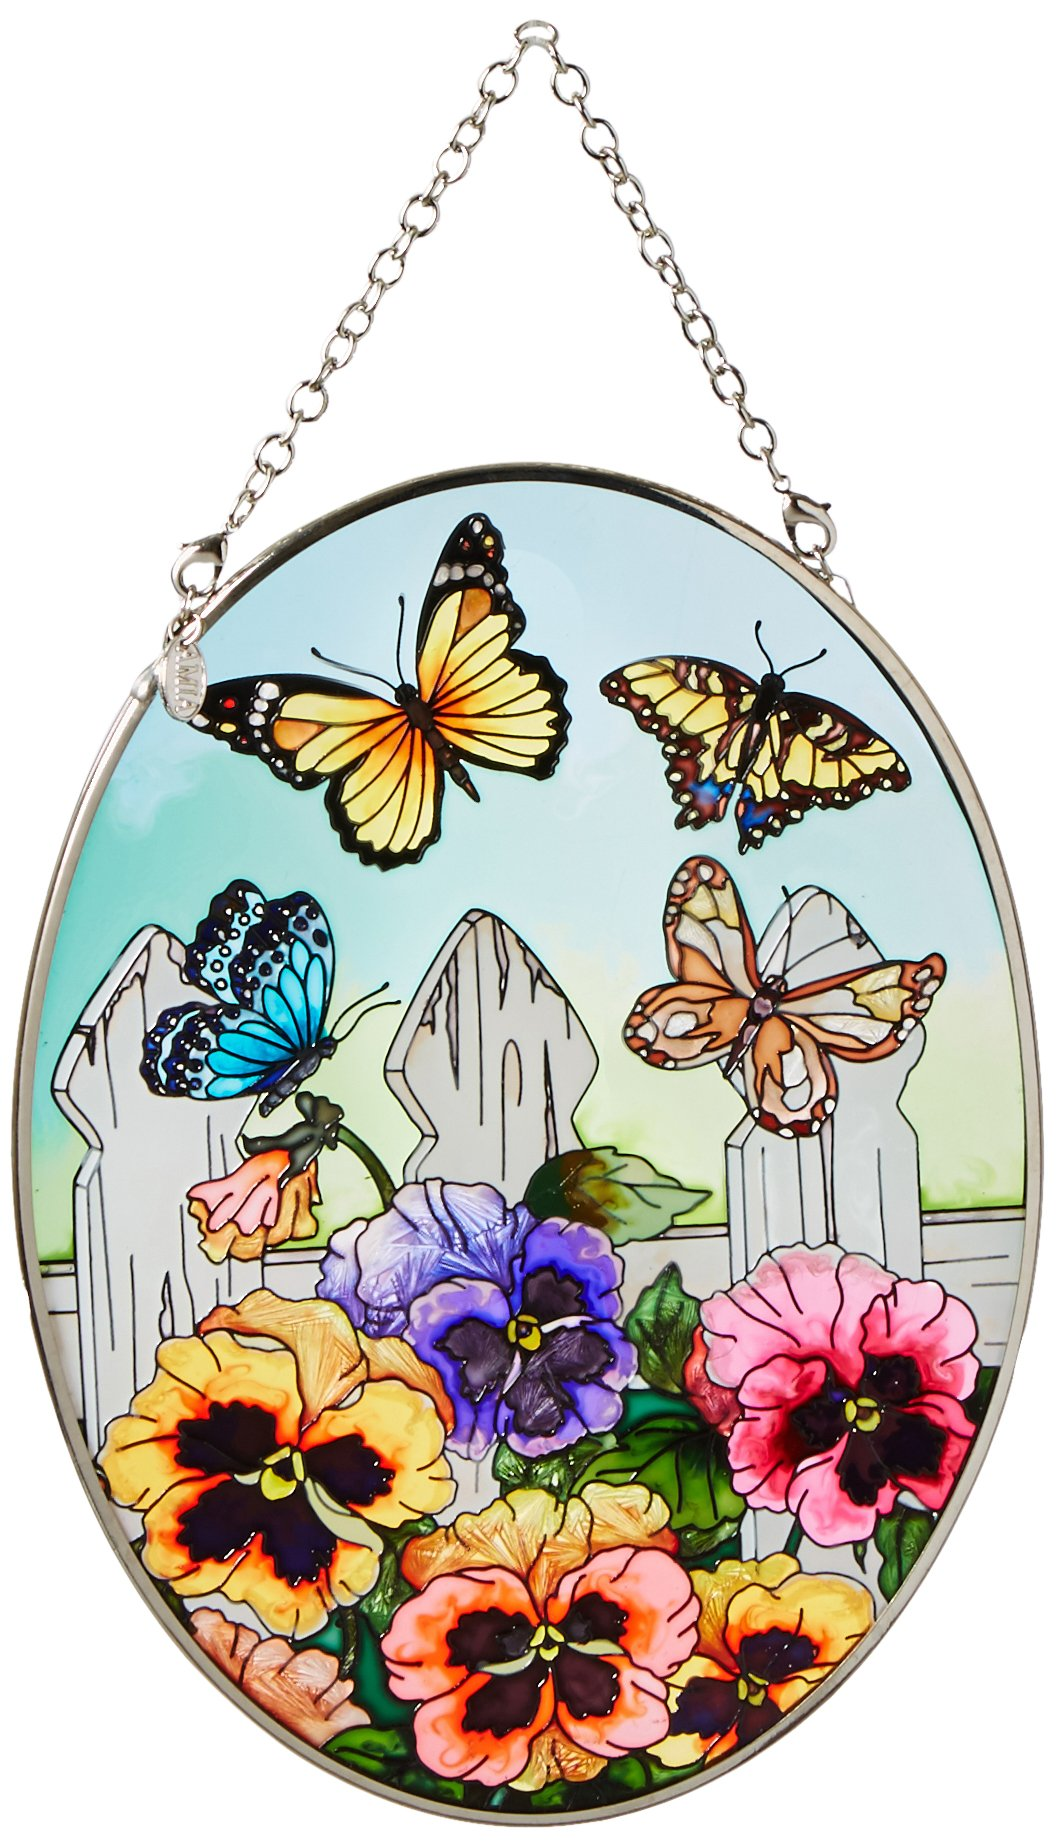 Amia 5858 Medium Oval Suncatcher with Pansy and Butterfly Design, Hand-painted Glass, 5-1/2-Inch W by 7-Inch L